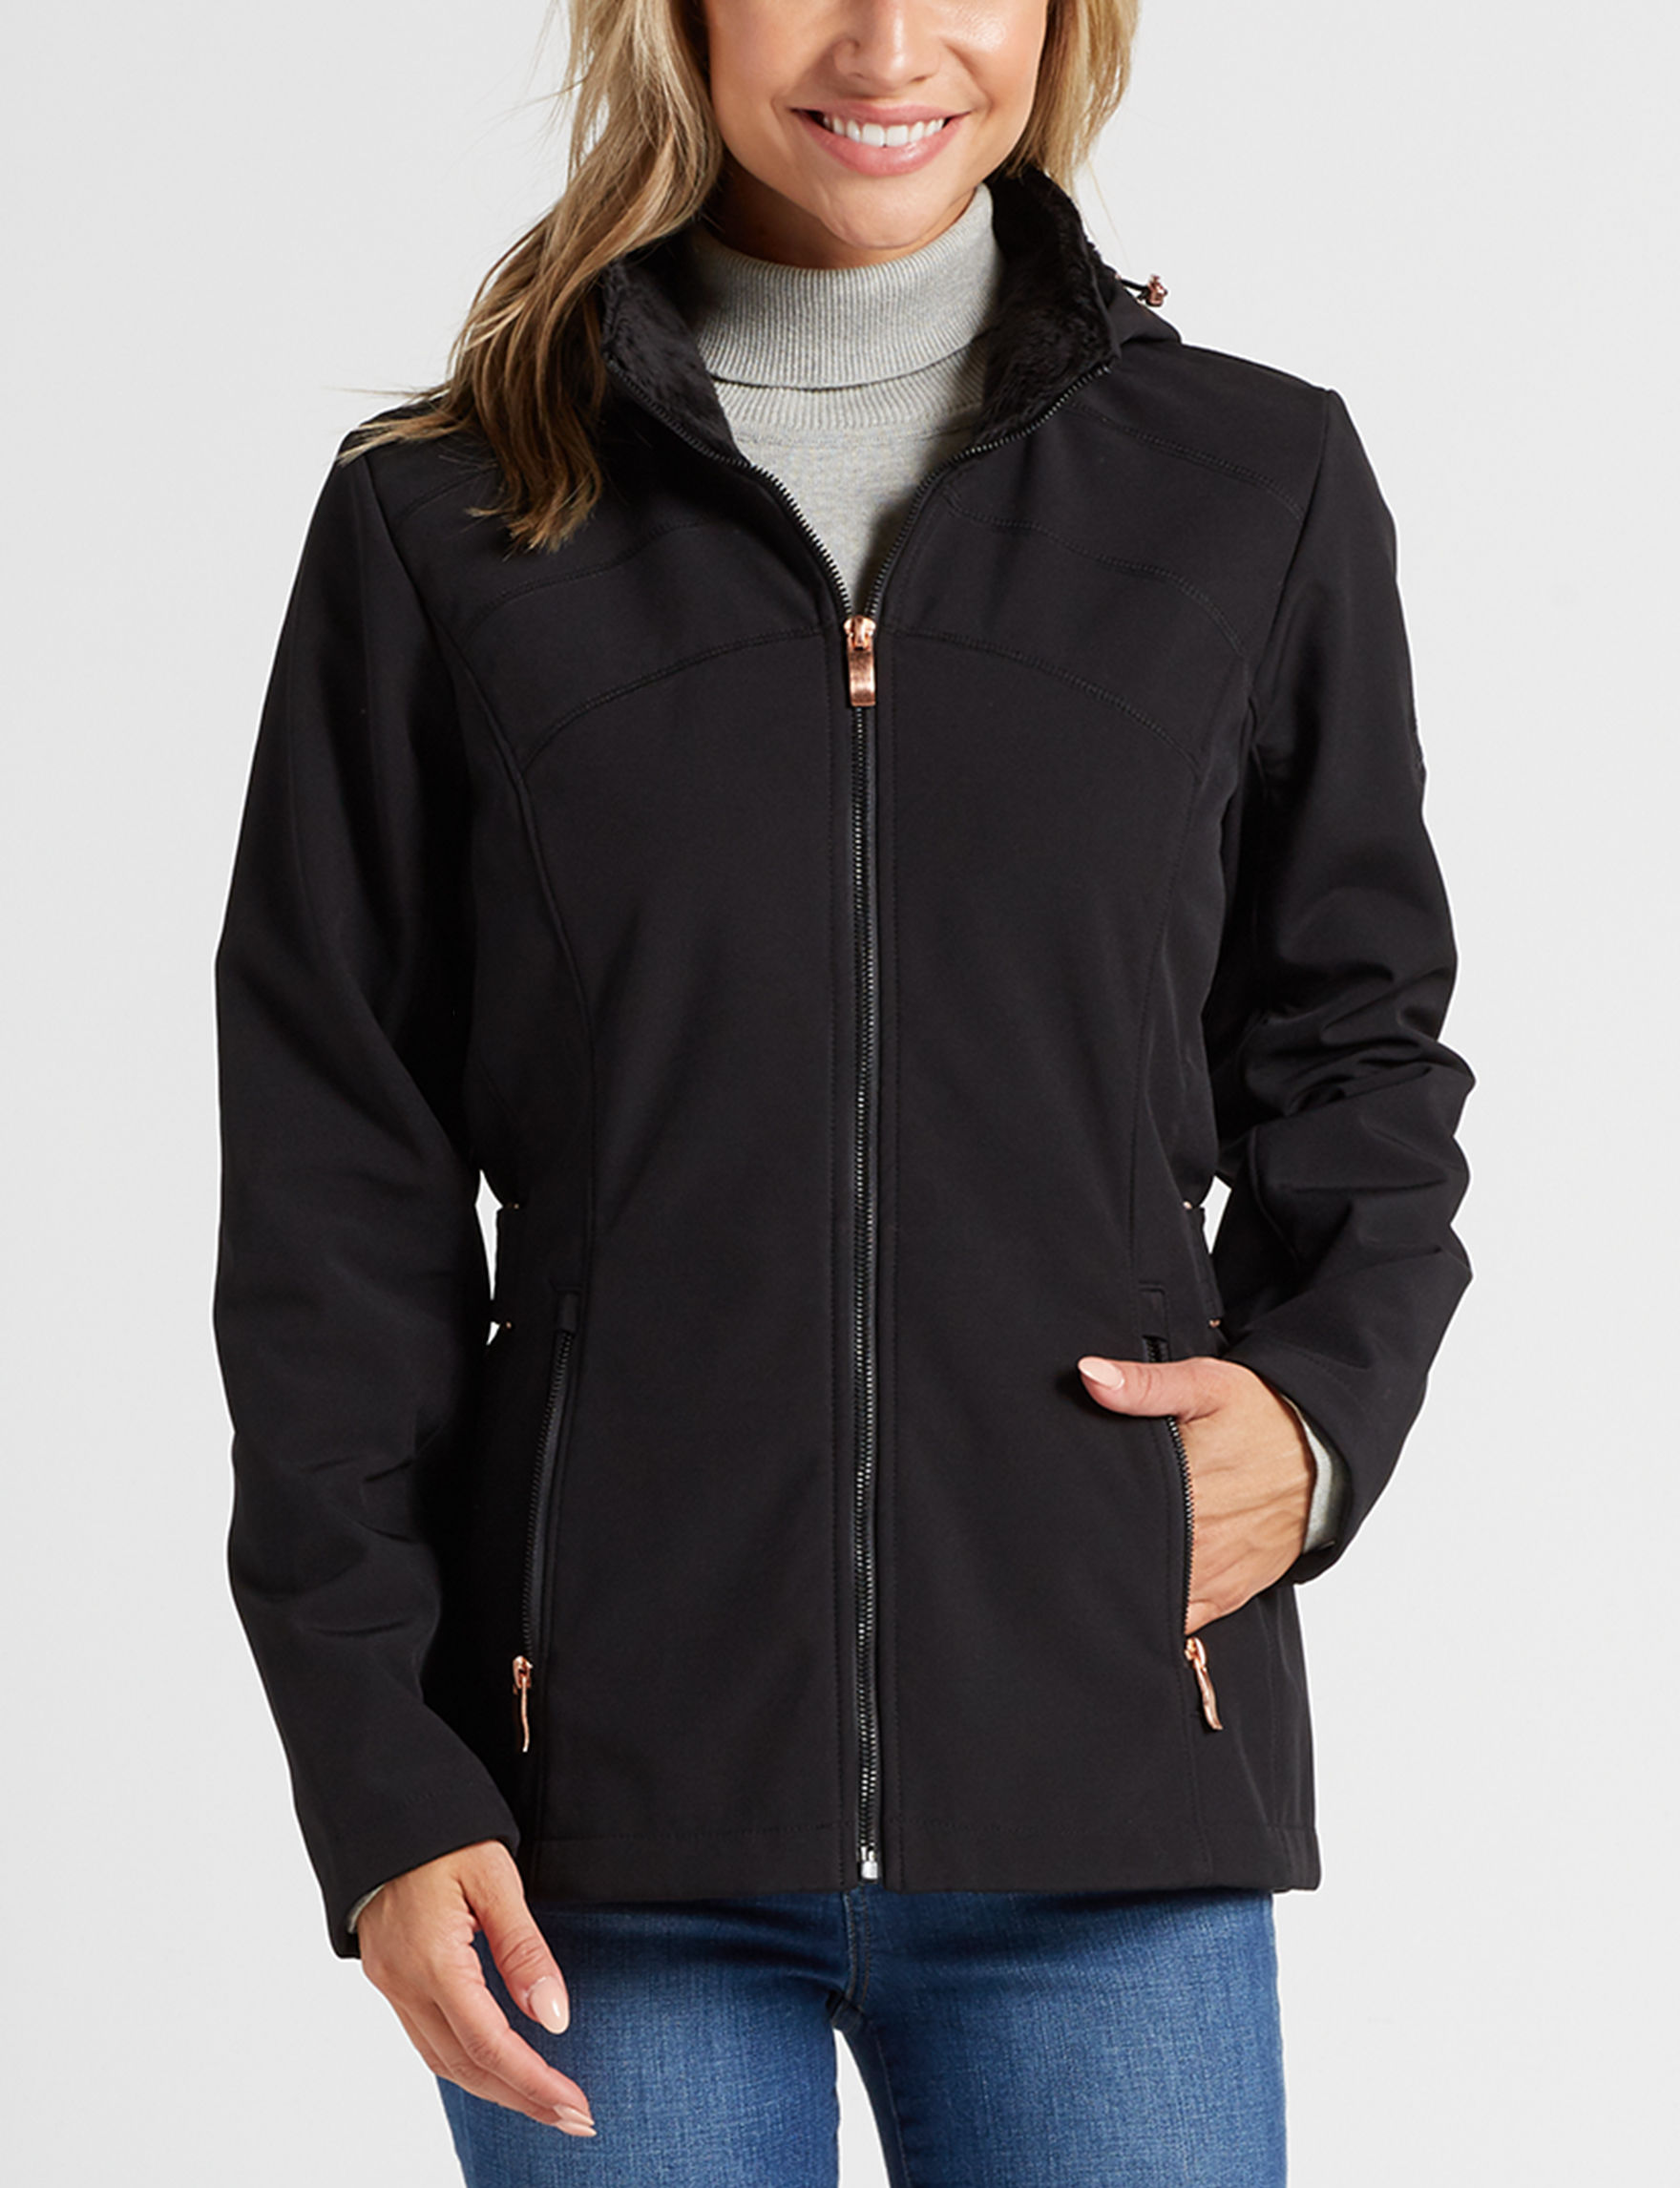 Zero Xposur Black Fleece & Soft Shell Jackets